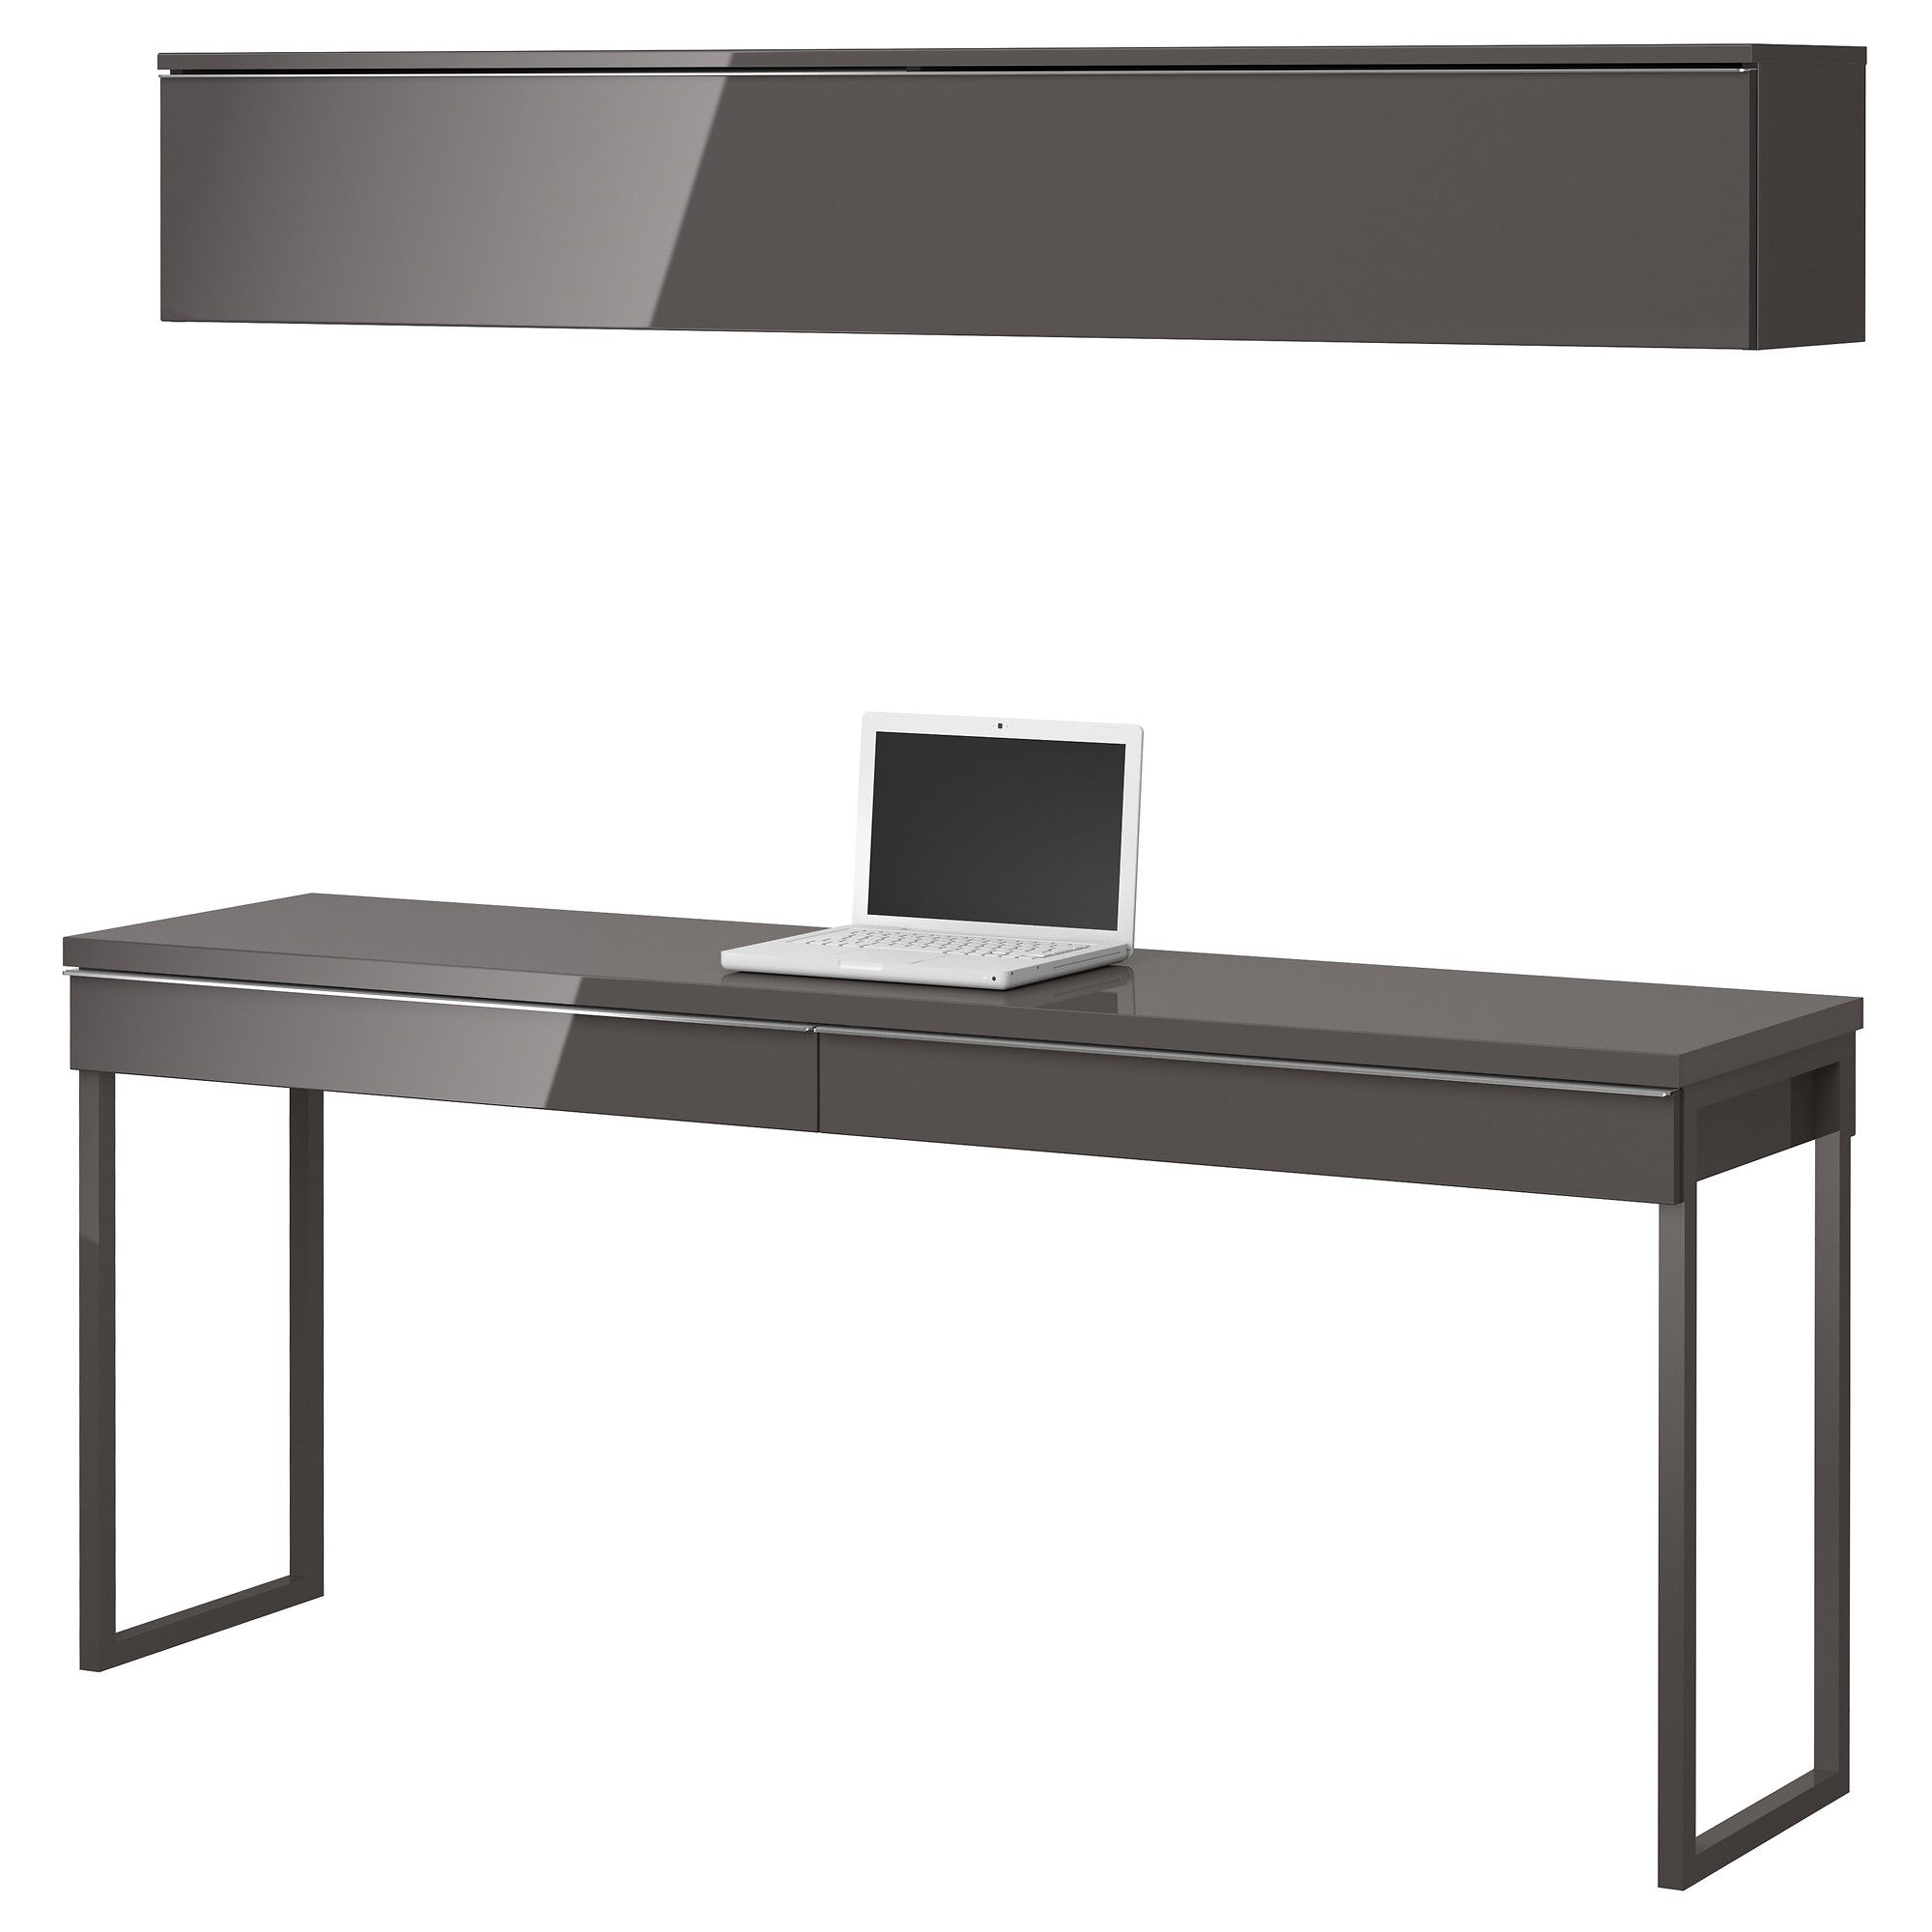 BEST… BURS Desk bination I think this is the perfect desk for